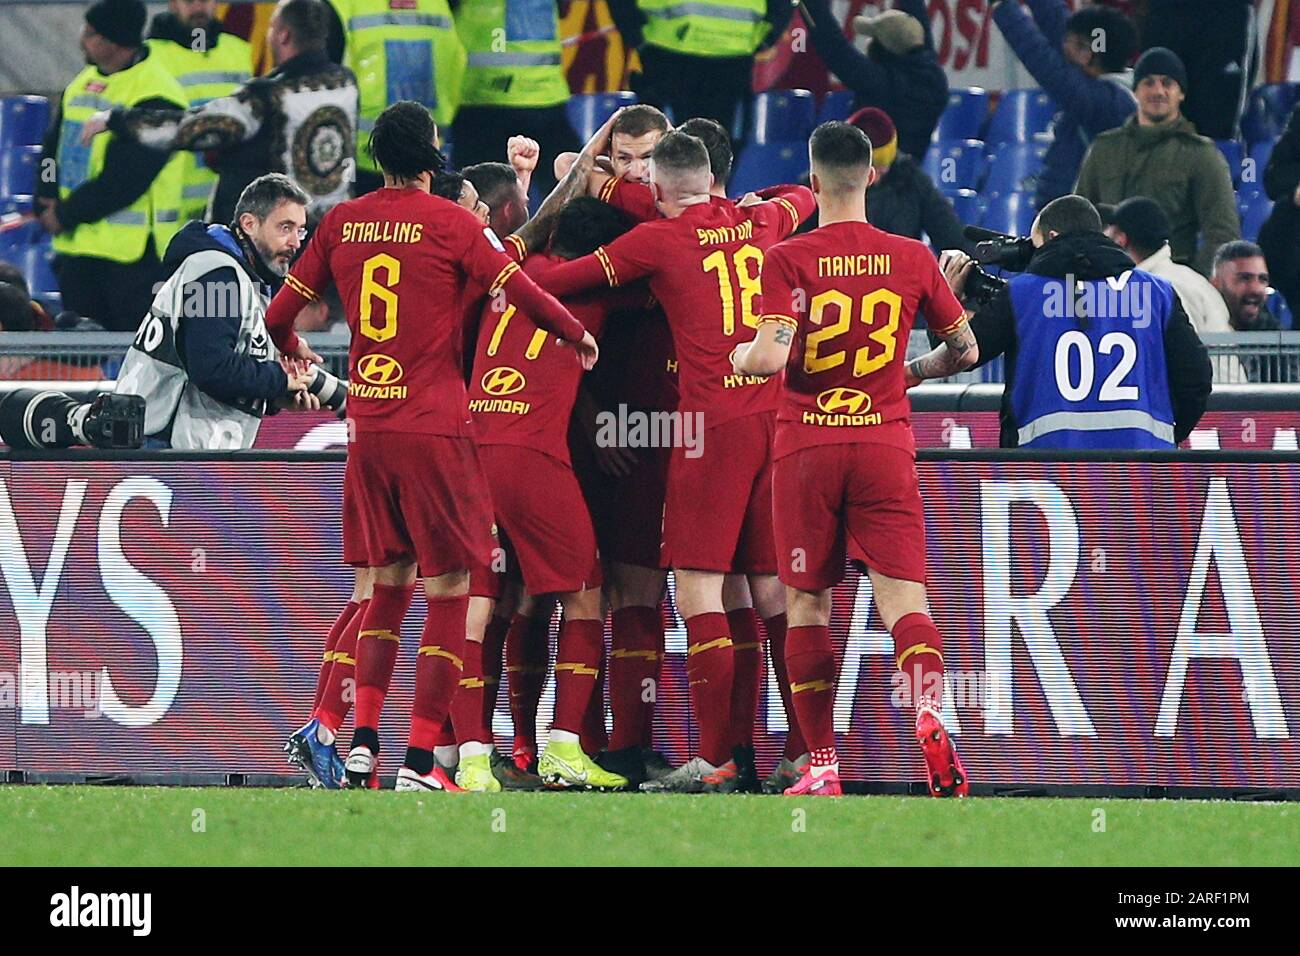 Edin Dzeko of Roma celebrates with his teammates after scring 1-0 goal during the Italian championship Serie A football match between AS Roma and SS Lazio on January 26, 2020 at Stadio Olimpico in Rome, Italy - Photo Federico Proietti/ESPA-Images Stock Photo